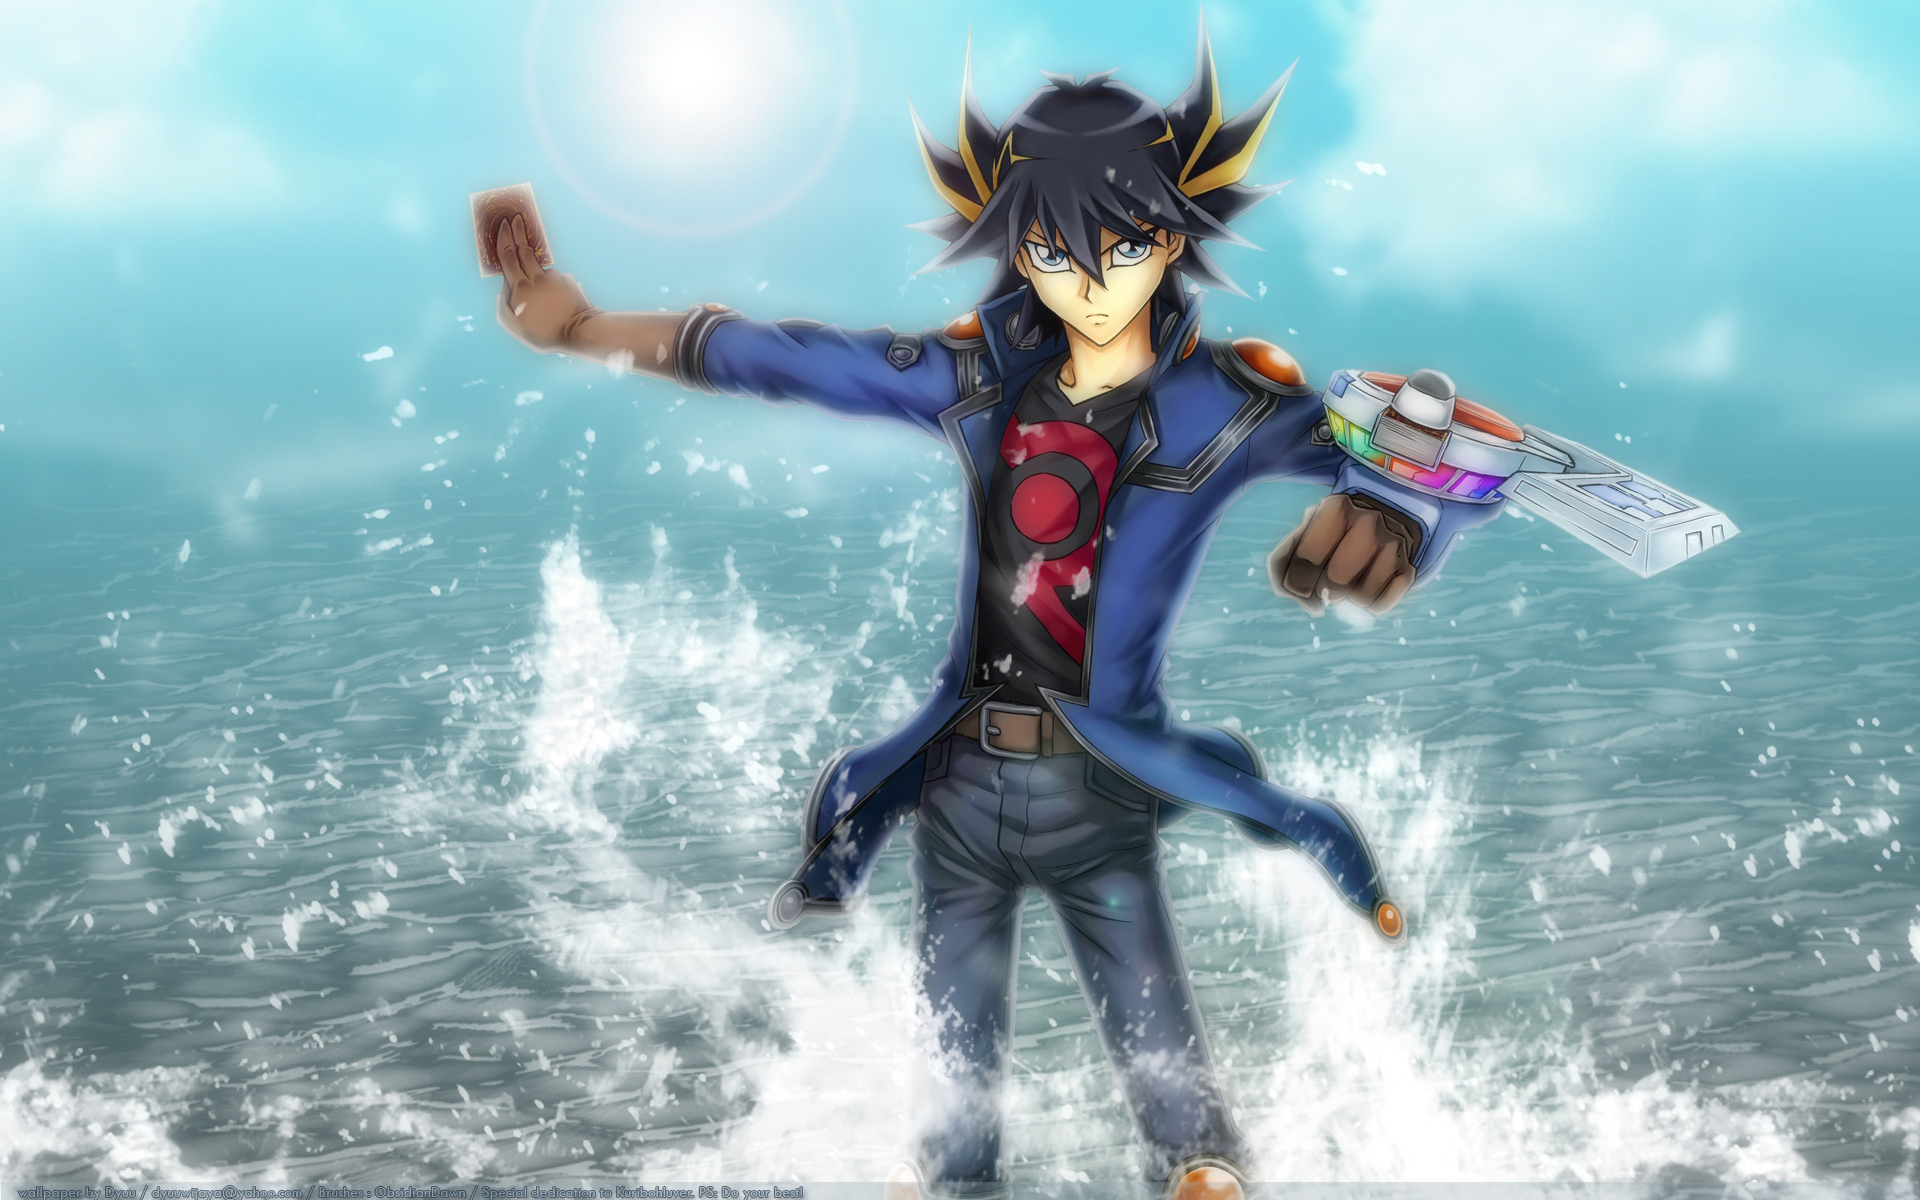 YuGiOh 5Ds images Yusei HD wallpaper and background photos